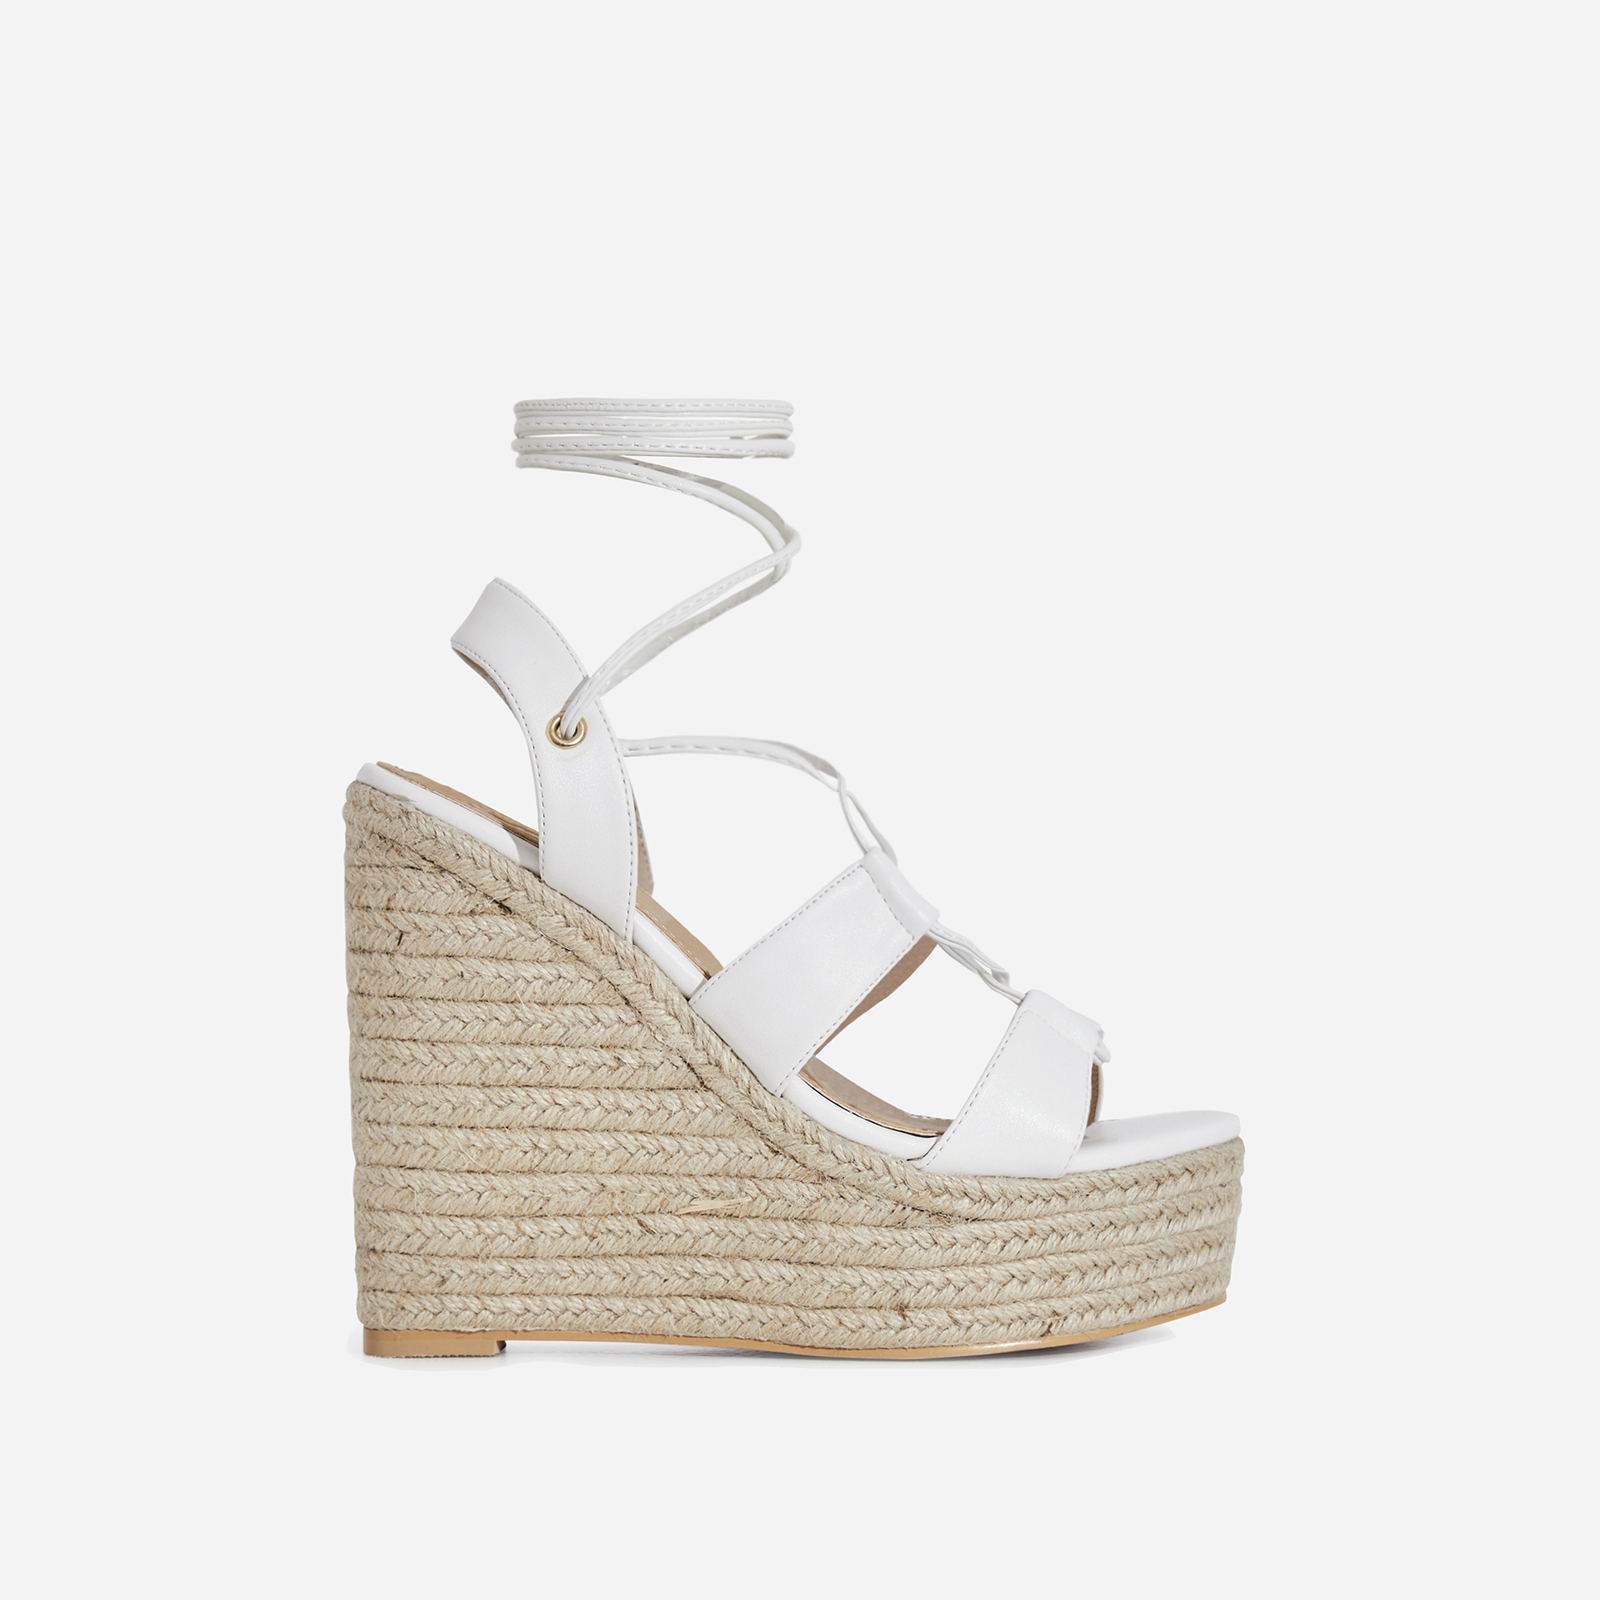 Emelia Lace Up Espadrille Wedge Platform Heel In White Faux Leather